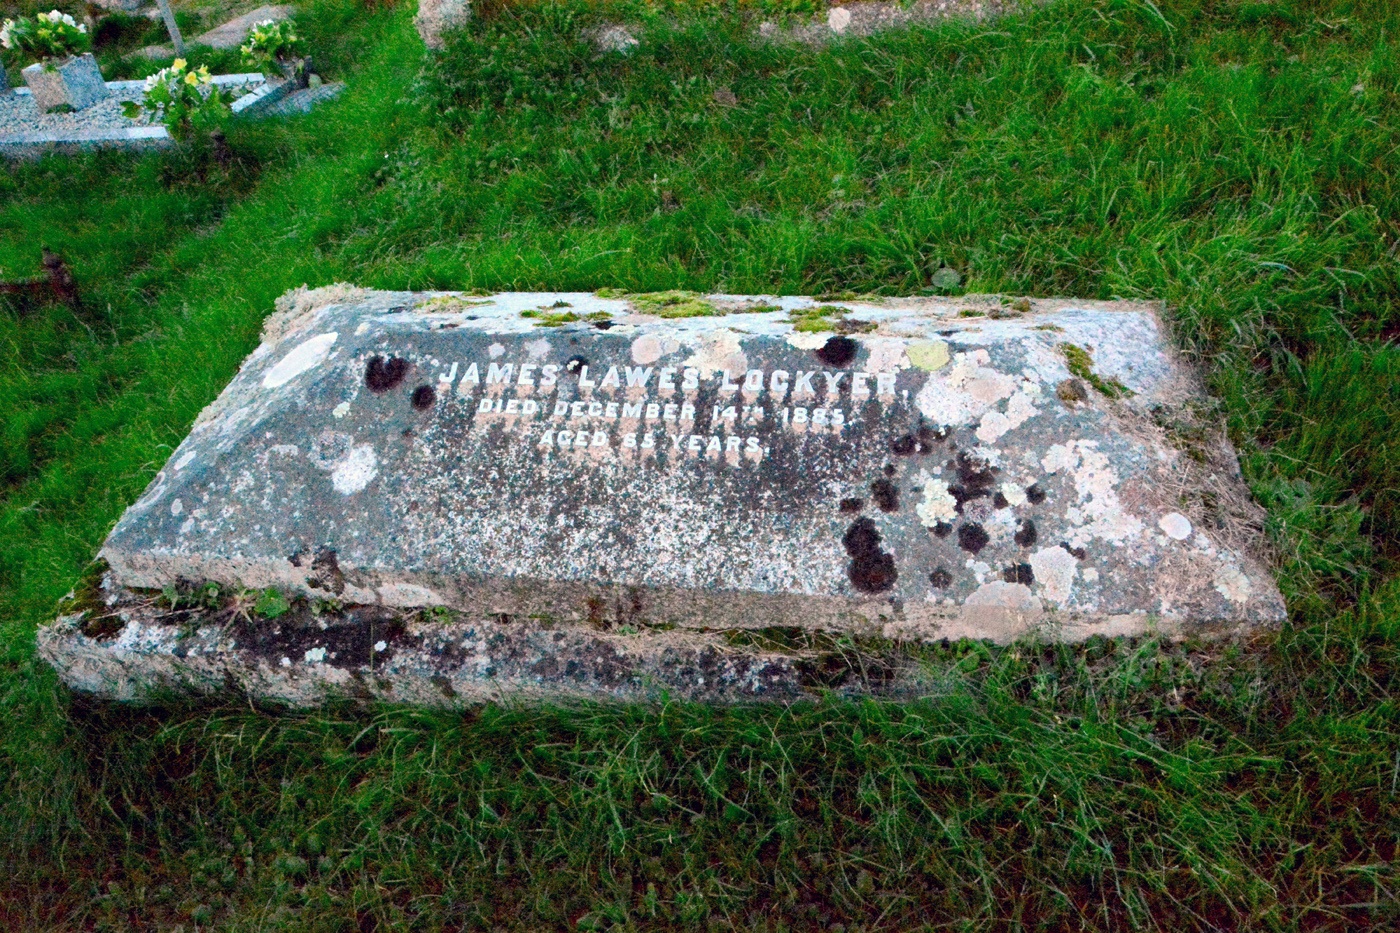 Lockyer_James_grave_Wembury_St Werburgh's Church_Sue Carylon photo_2017_02 s